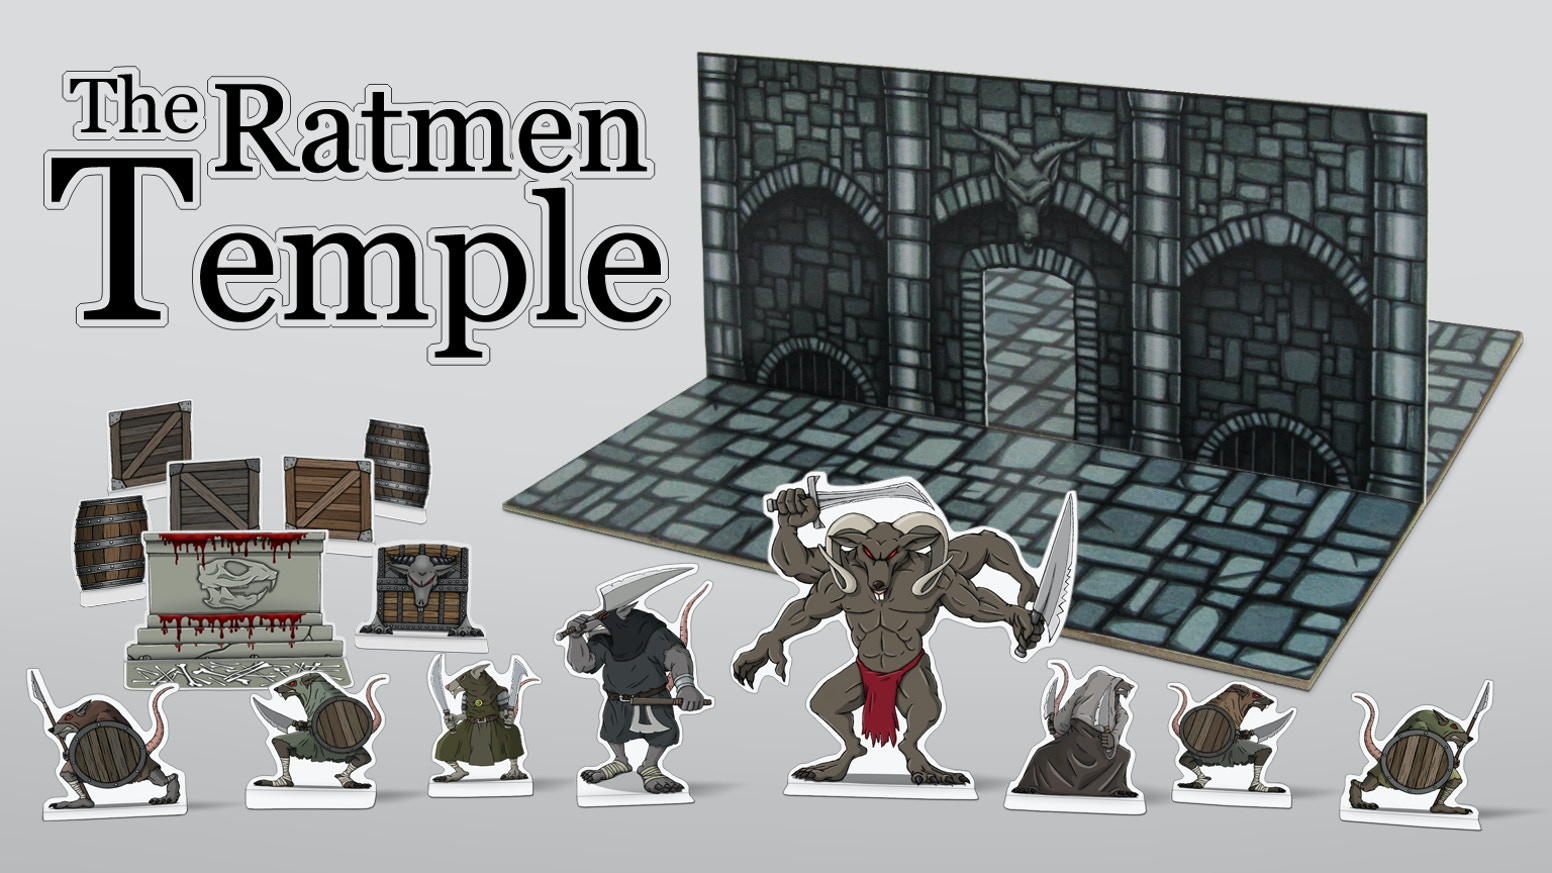 The Ratmen Temple is a fantasy paper model with miniatures created for tabletop role-playing games like Pathfinder and 5th Edition.